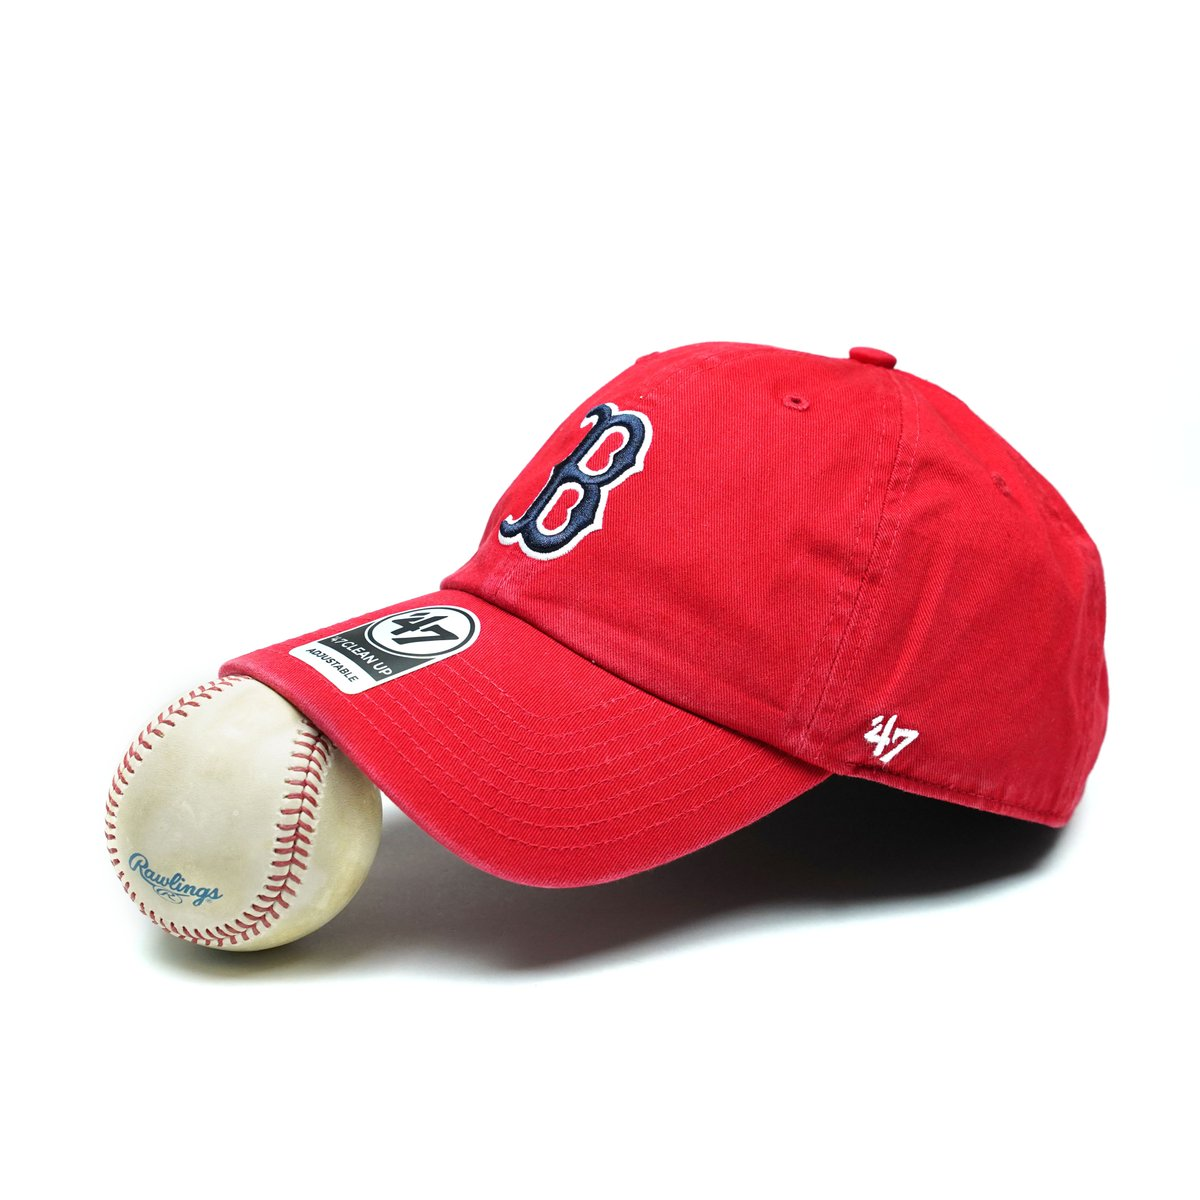 DAD HATS  SHOP http://www.topperzstore.de/mlb  #47brand #47caps #mlb #baseball #strapback #dadhat #dadhats #fashion #cotd #capoftheday #capcollector #capaddict #speakwithyourcap #hataddict #hatcollector #majorleaguebaseball #redsox #baseball #47brandpic.twitter.com/sC1d5St6pU